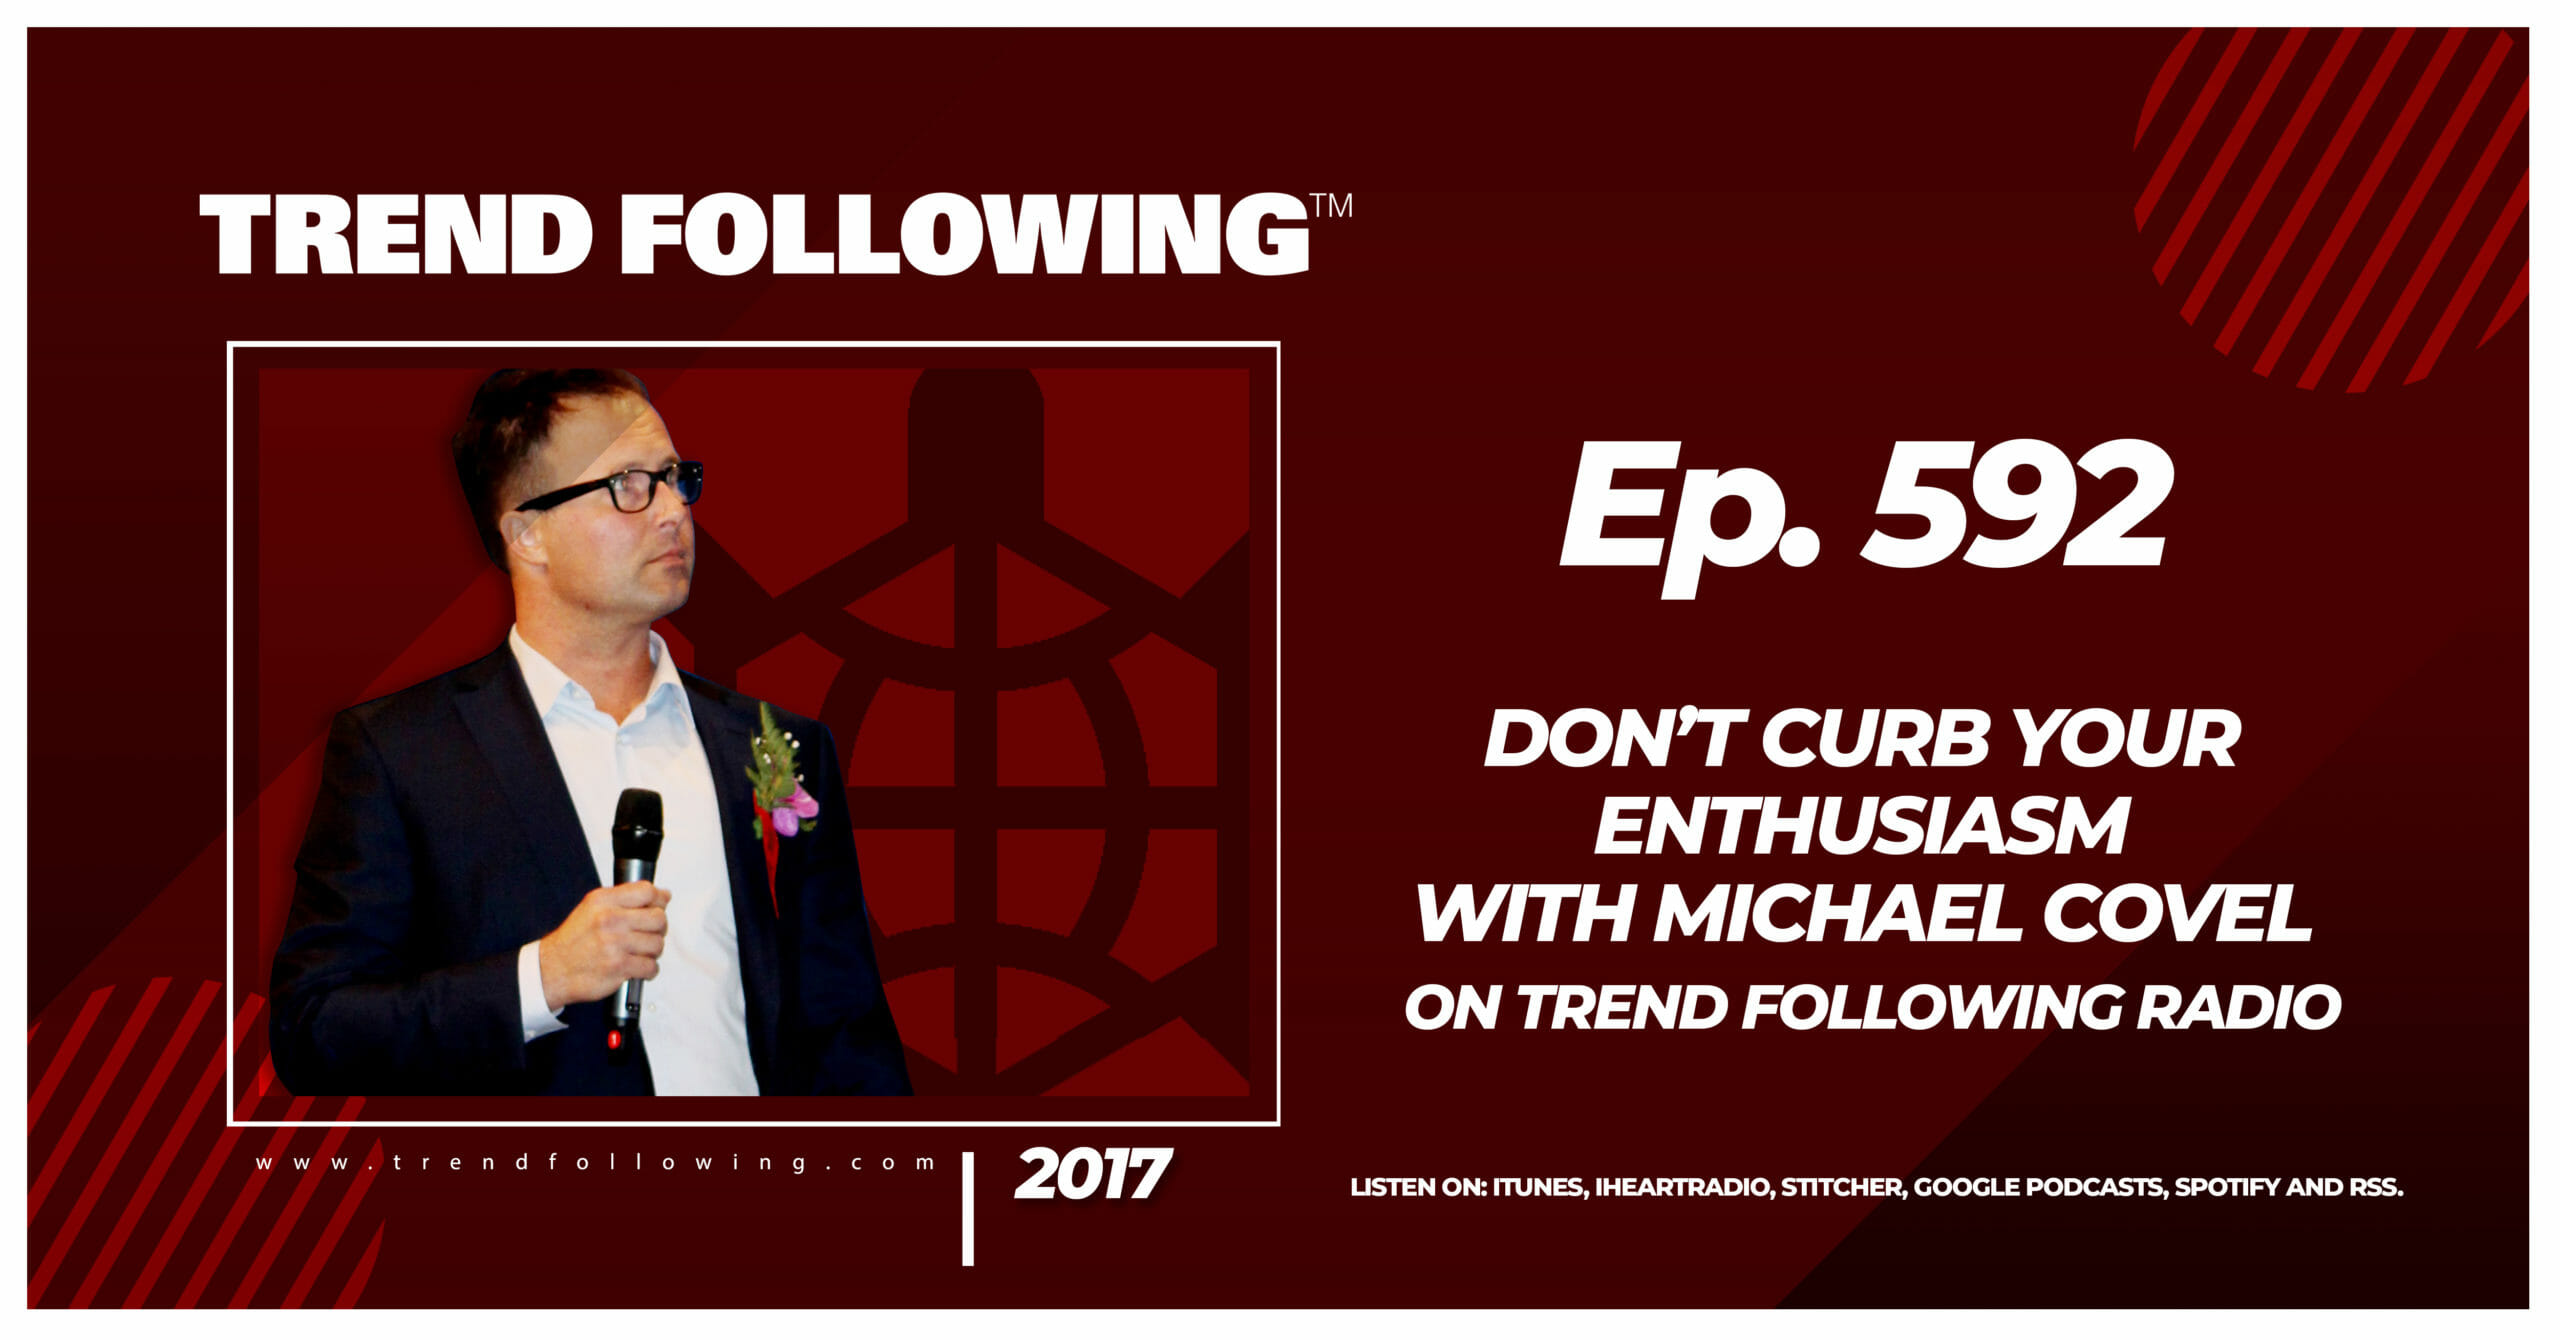 Don't Curb Your Enthusiasm with Michael Covel on Trend Following Radio